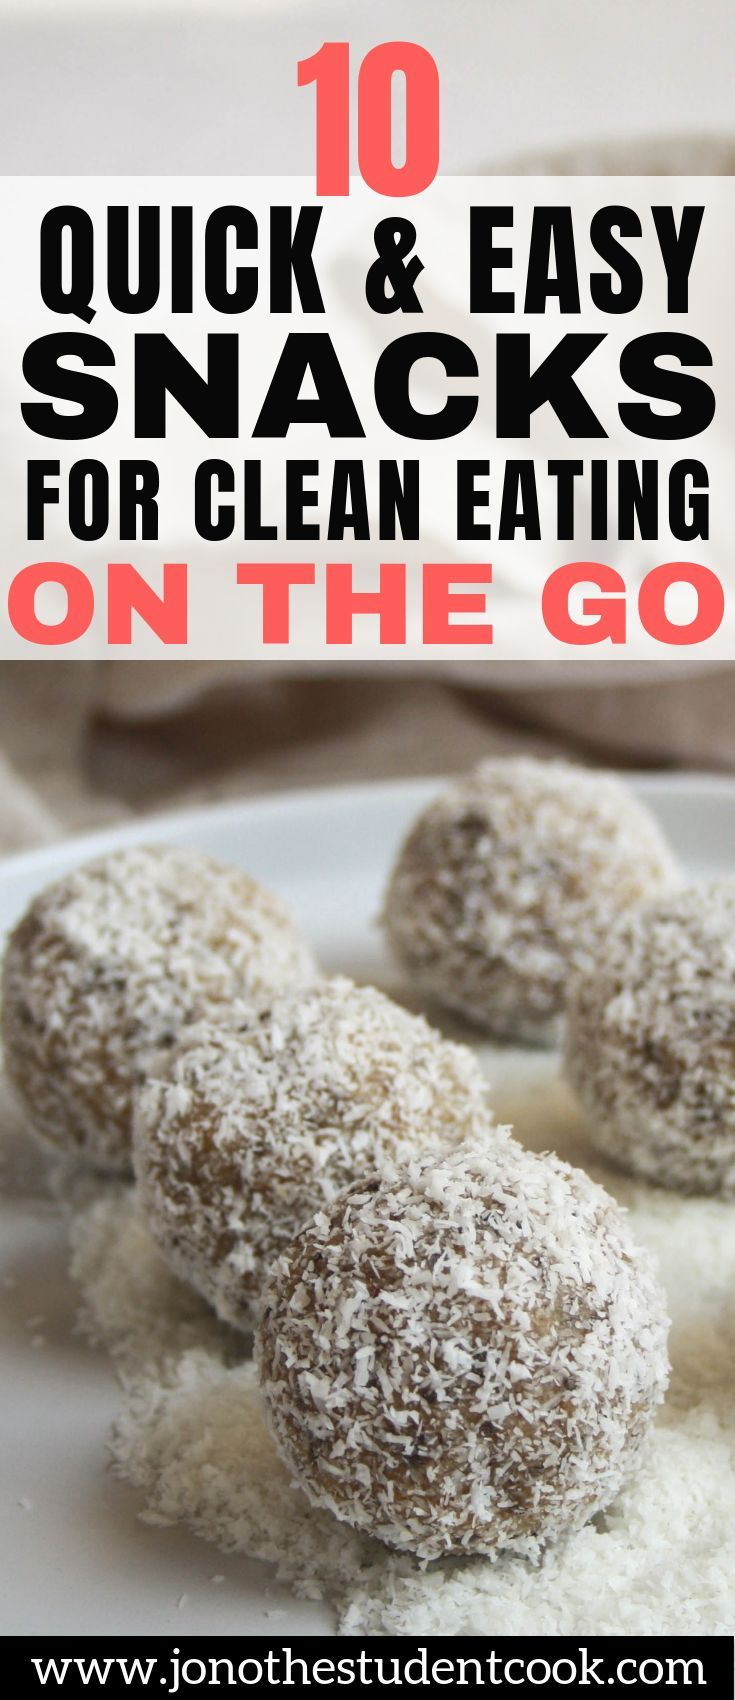 10 Quick & Easy Snacks For Clean Eating On The Go images